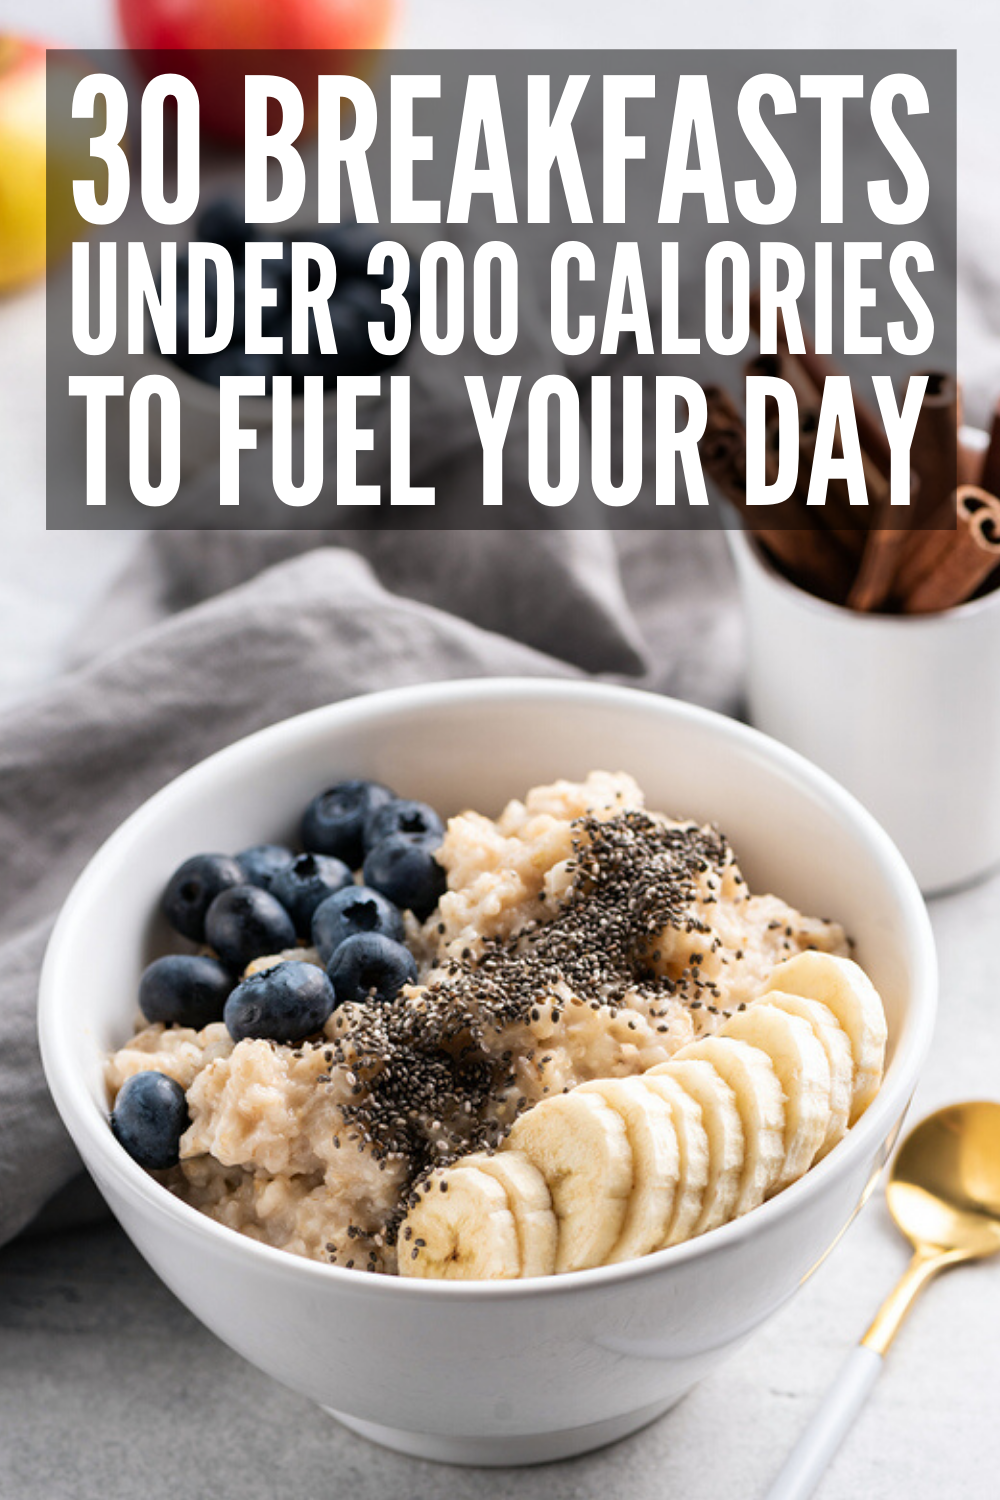 30 Breakfasts Under 300 Calories to Kickstart Your Day